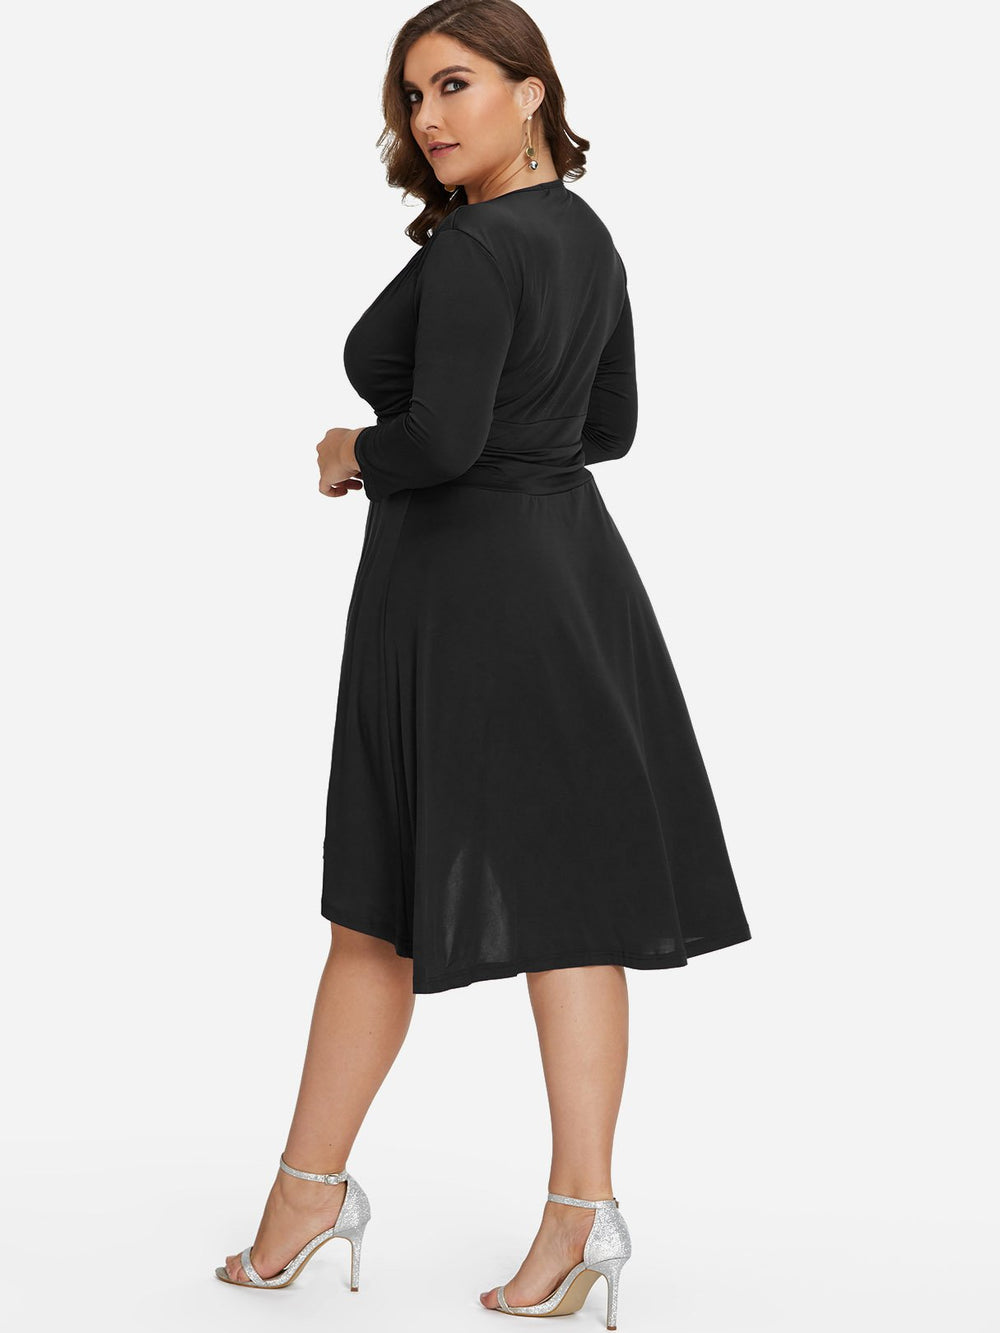 Where To Try On Plus Size Bridesmaid Dresses